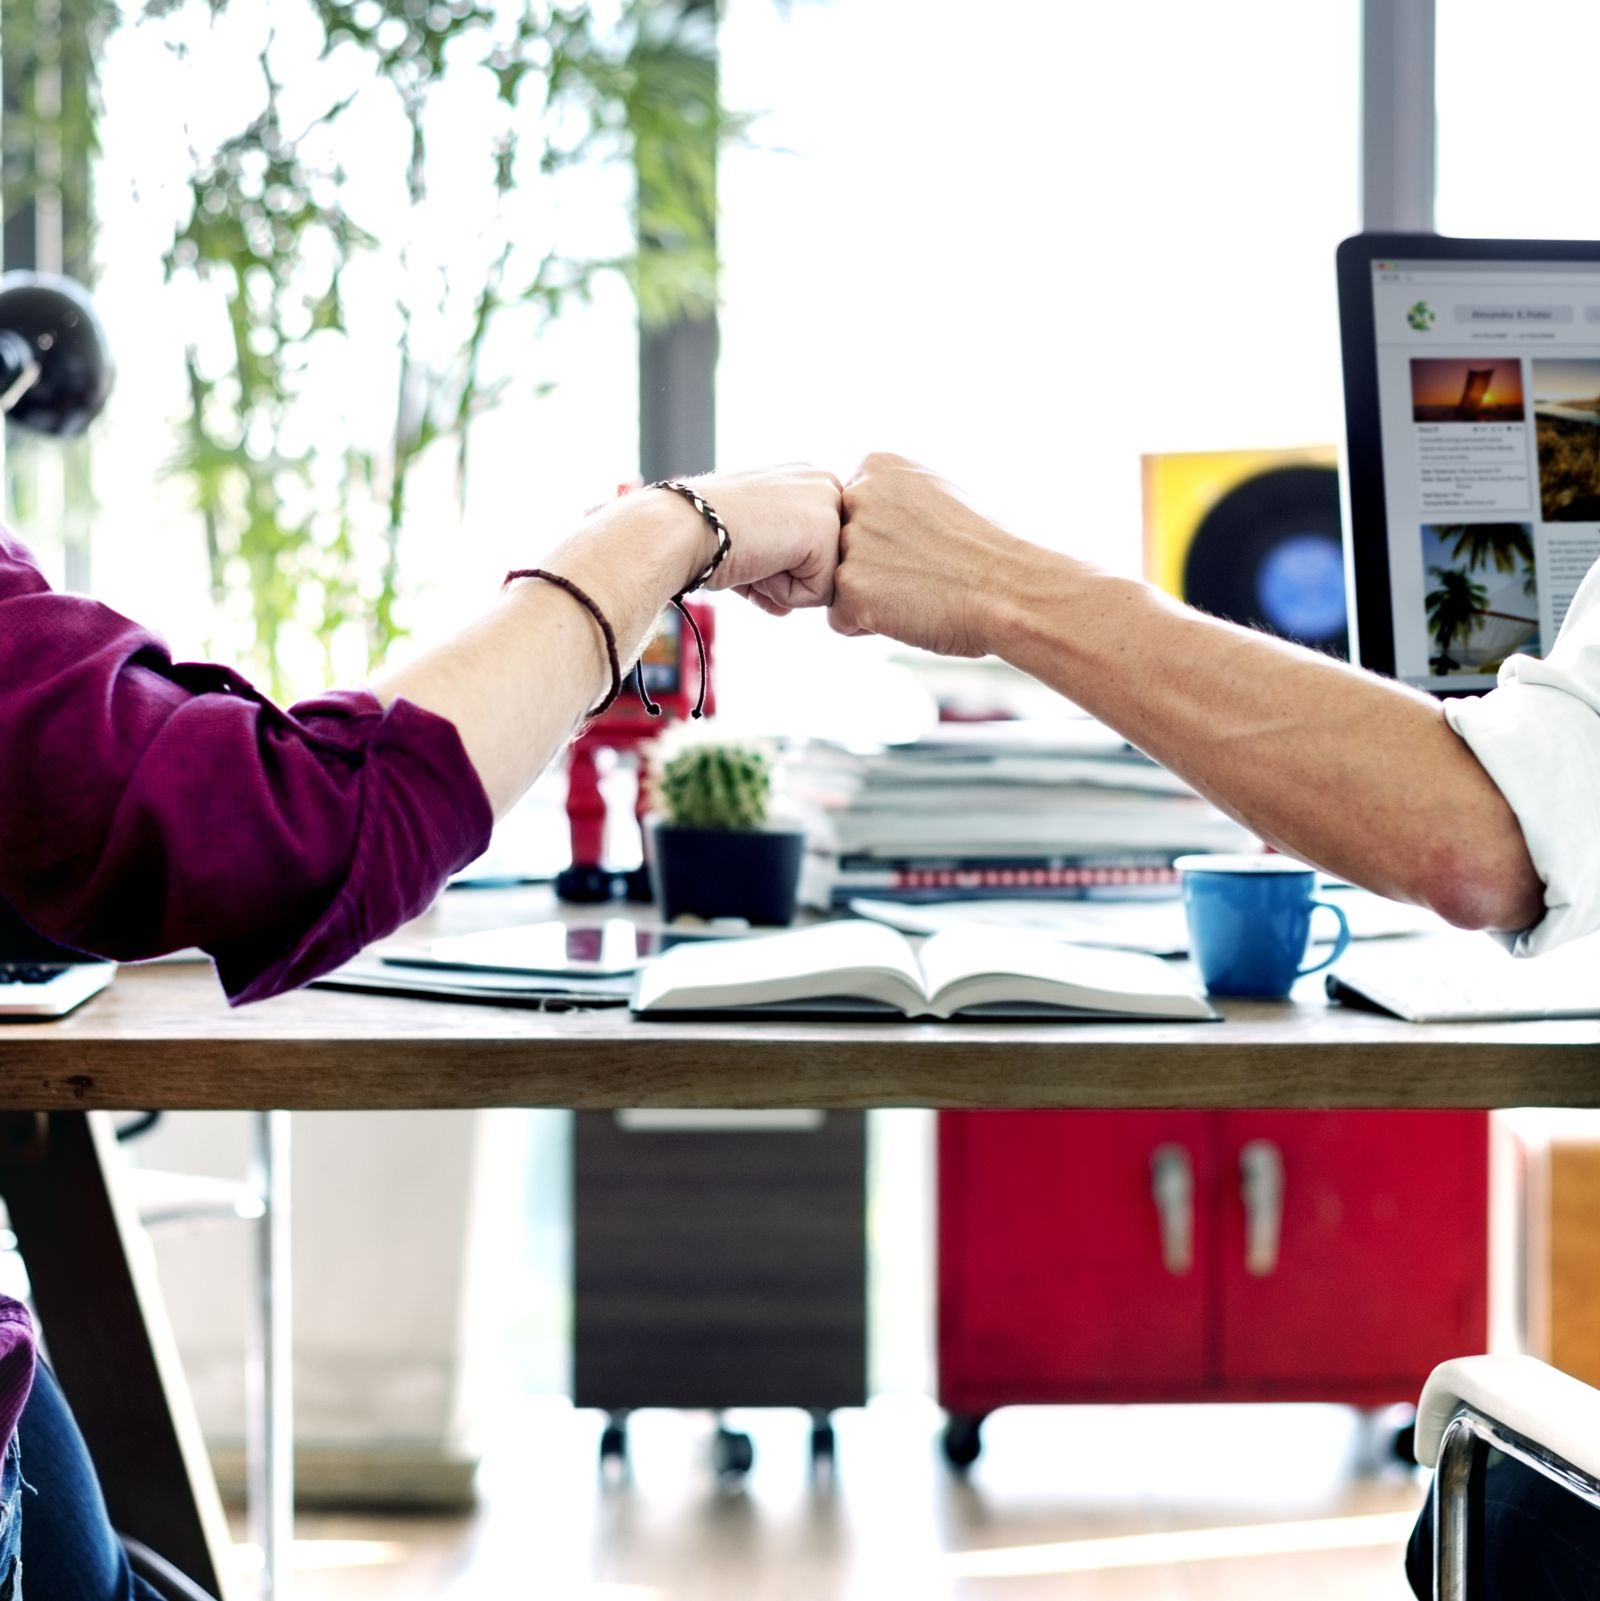 Partnership agreements, love law firm, Francine e love, small business, start-ups